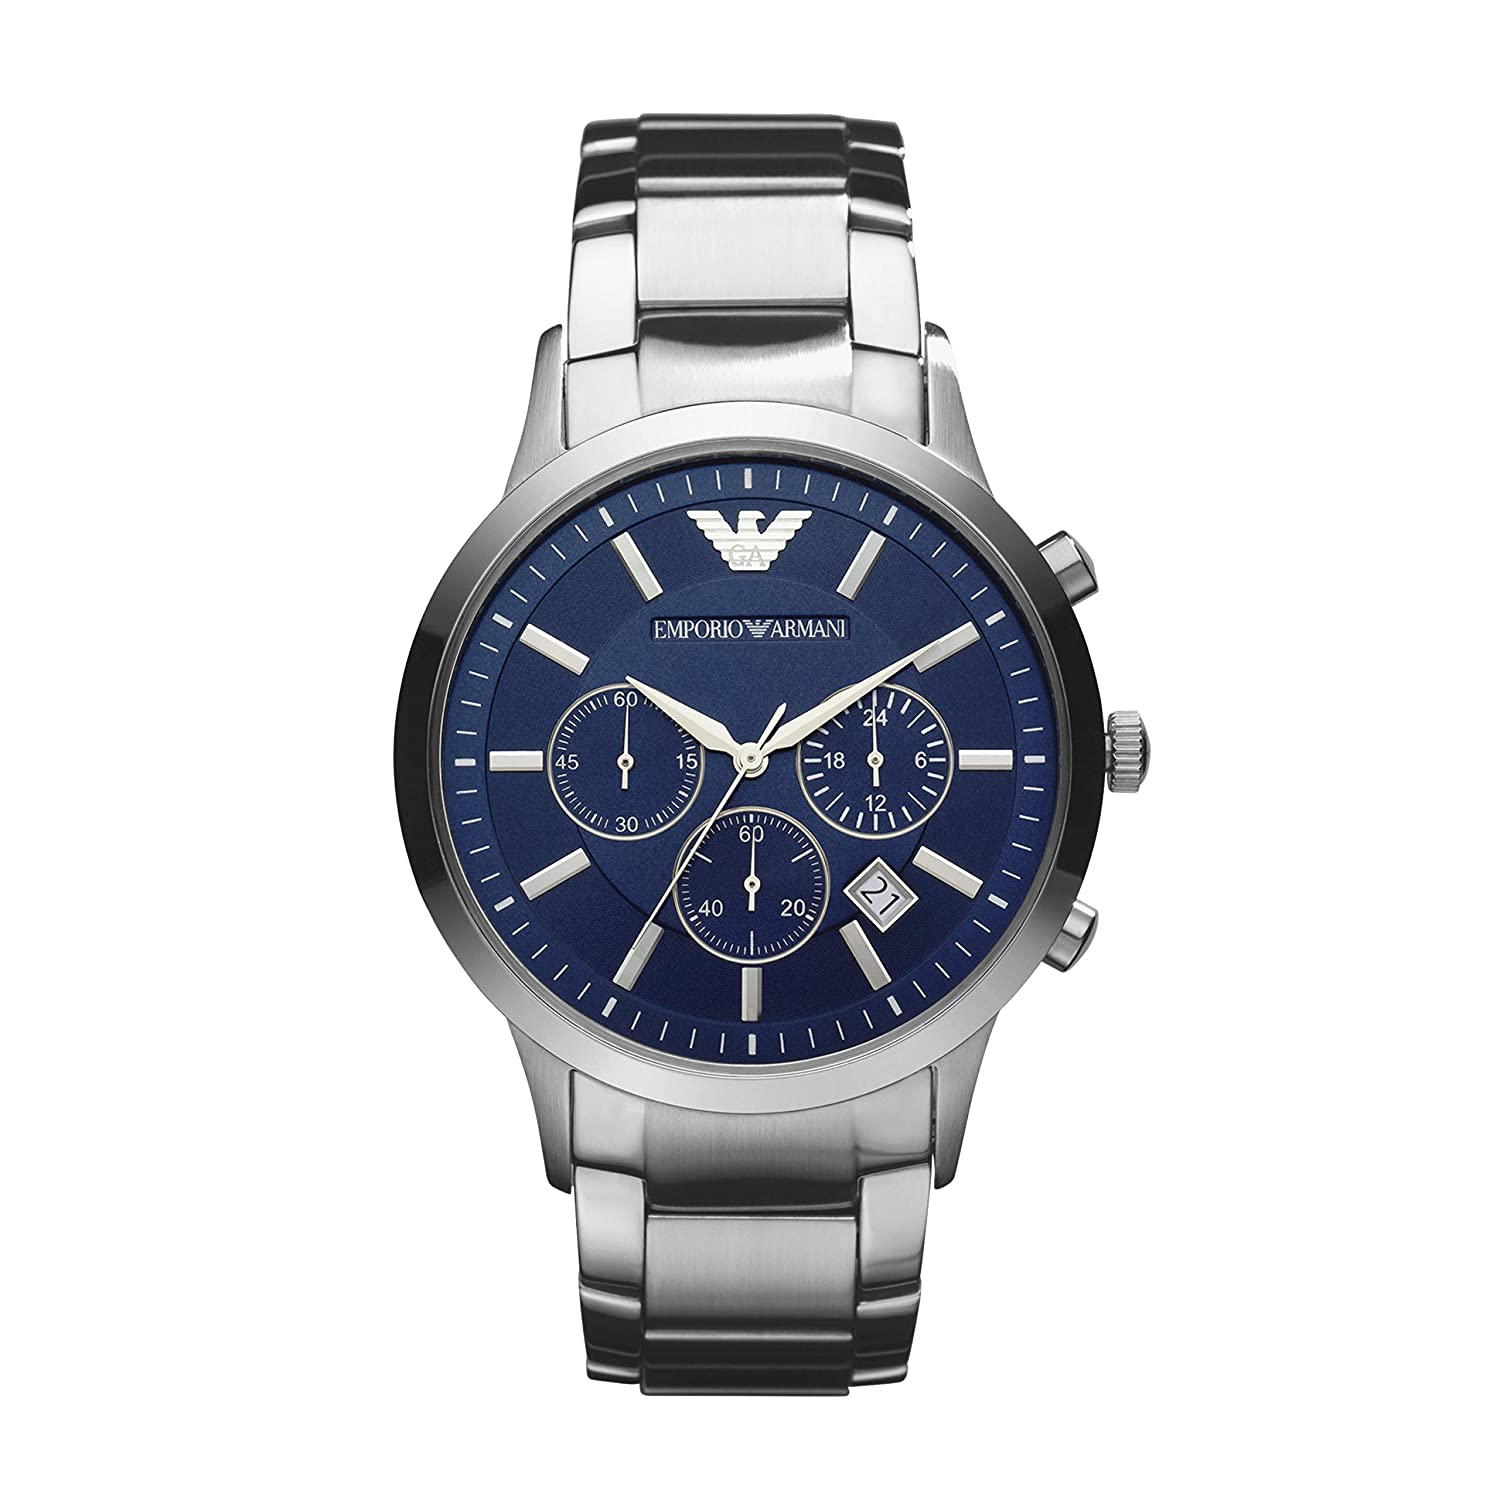 Emporio Armani - Top 10 Luxury Watch Brands in India